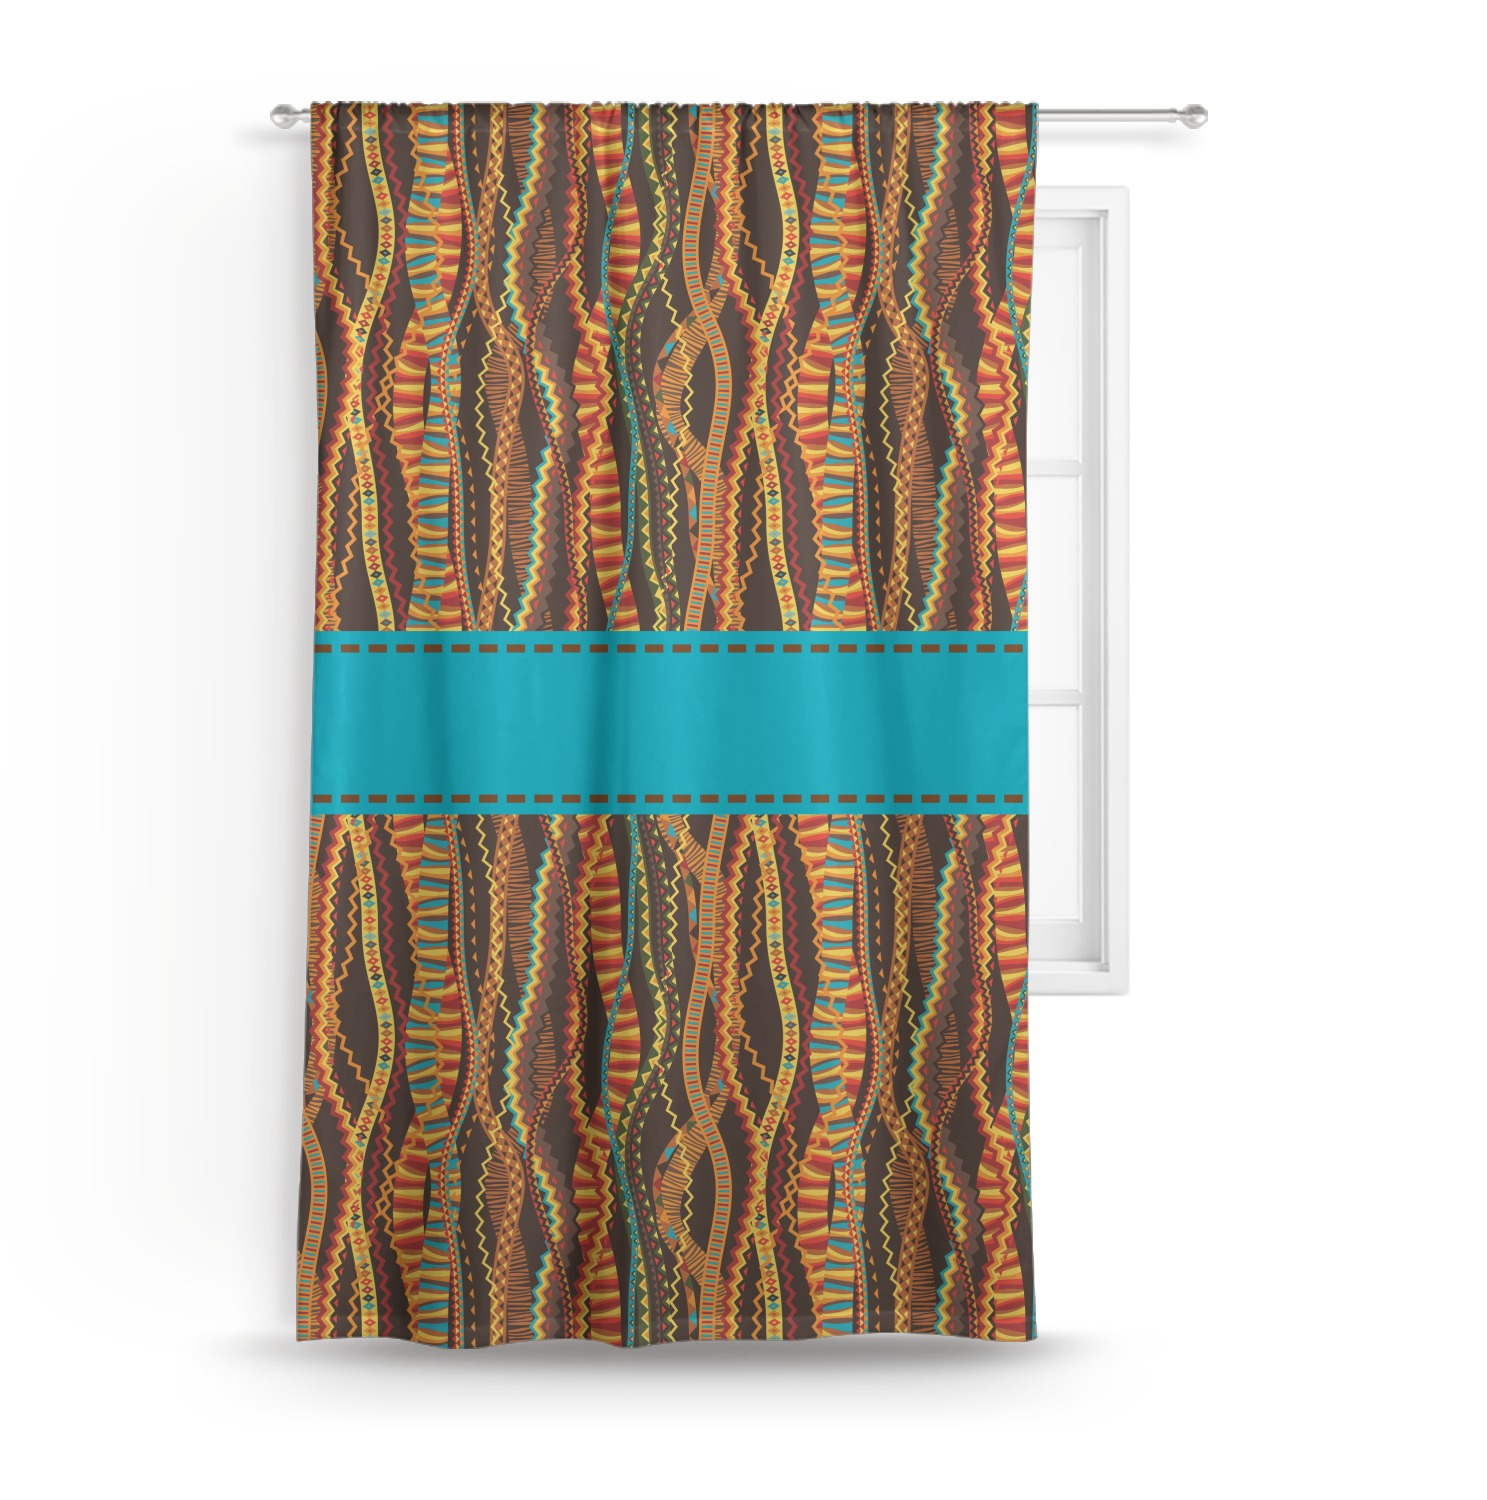 Tribal Ribbons Curtain (Personalized)